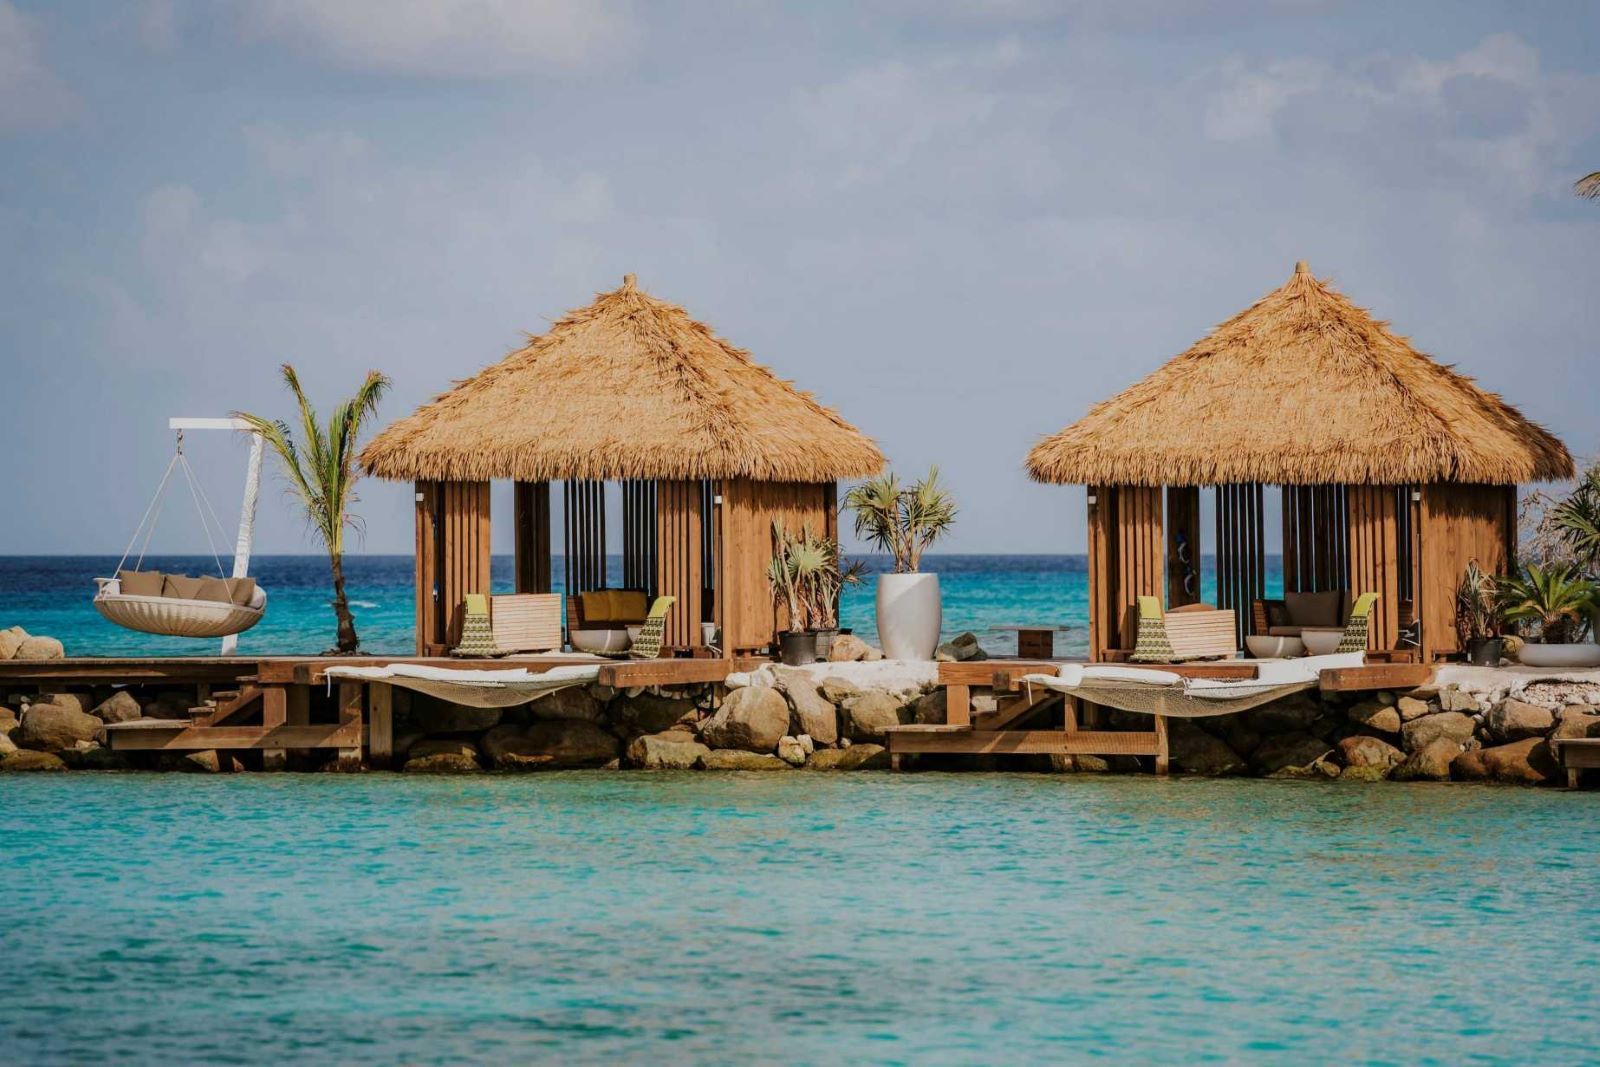 two open air Cabanas on a pier along the crystal blue waters, each furnished beautifully with relaxing sitting areas and hammocks overhanging the water